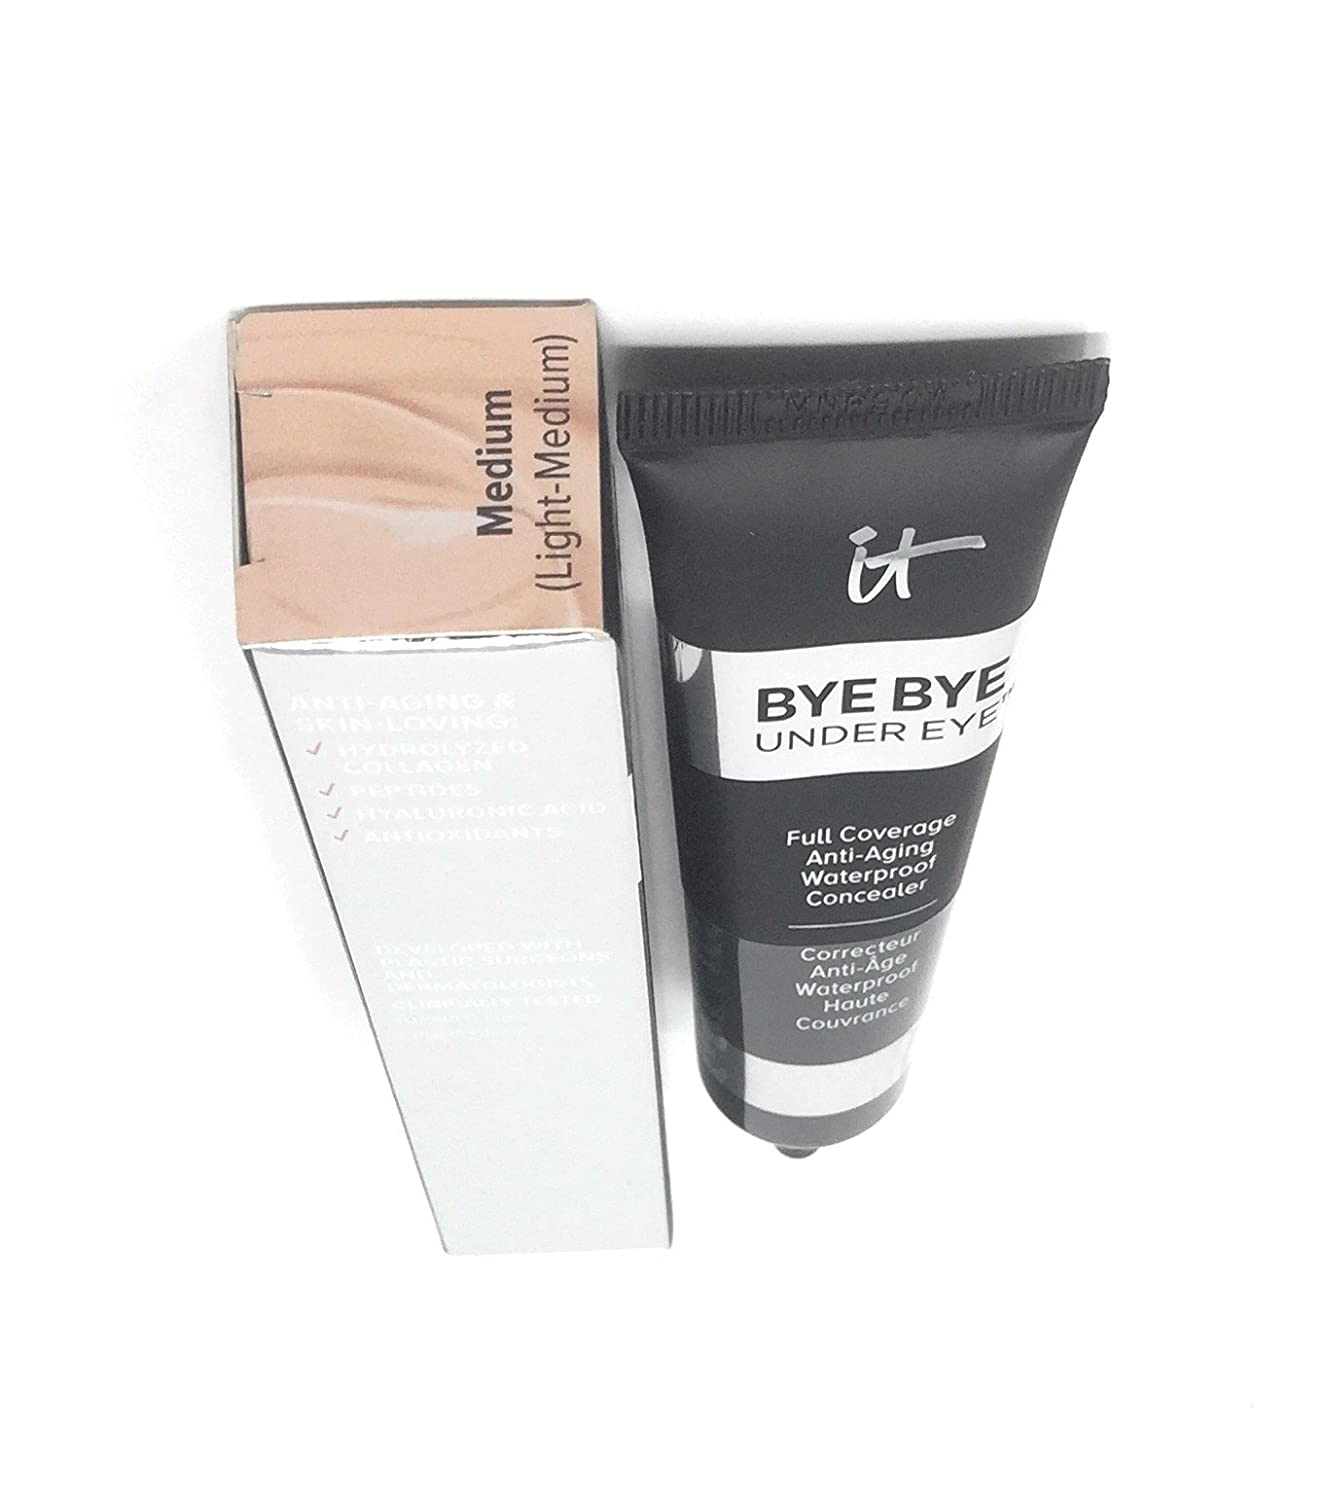 it Cosmetics Supersize Bye Bye Under Eye Concealer 1 fl oz. (Neutral Medium) by it Cosmetics